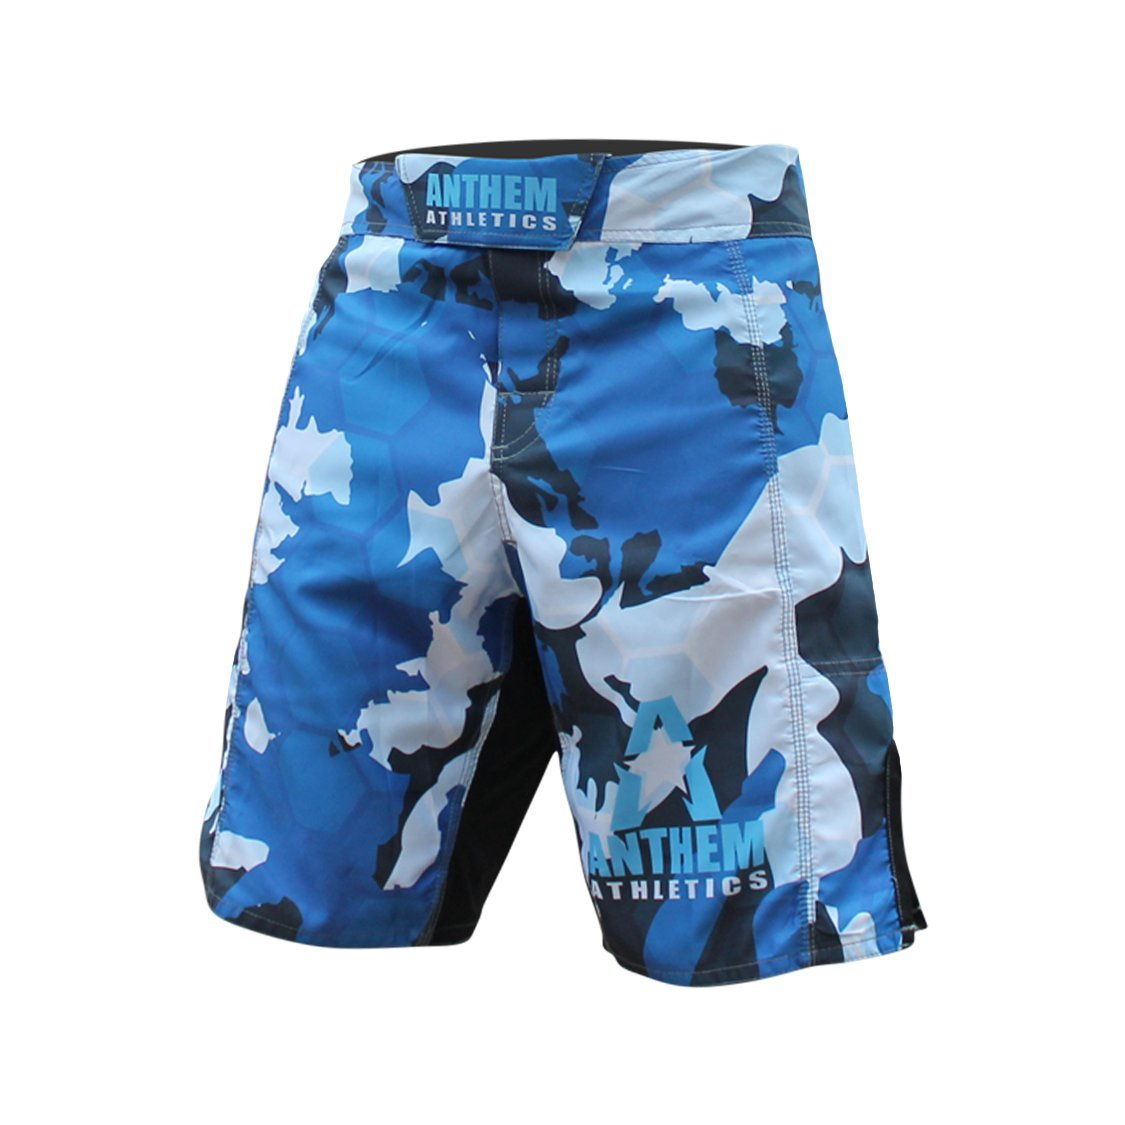 Anthem Athletics RESILIENCE Fight Shorts - Blue Camo Hex - 30'' by Anthem Athletics